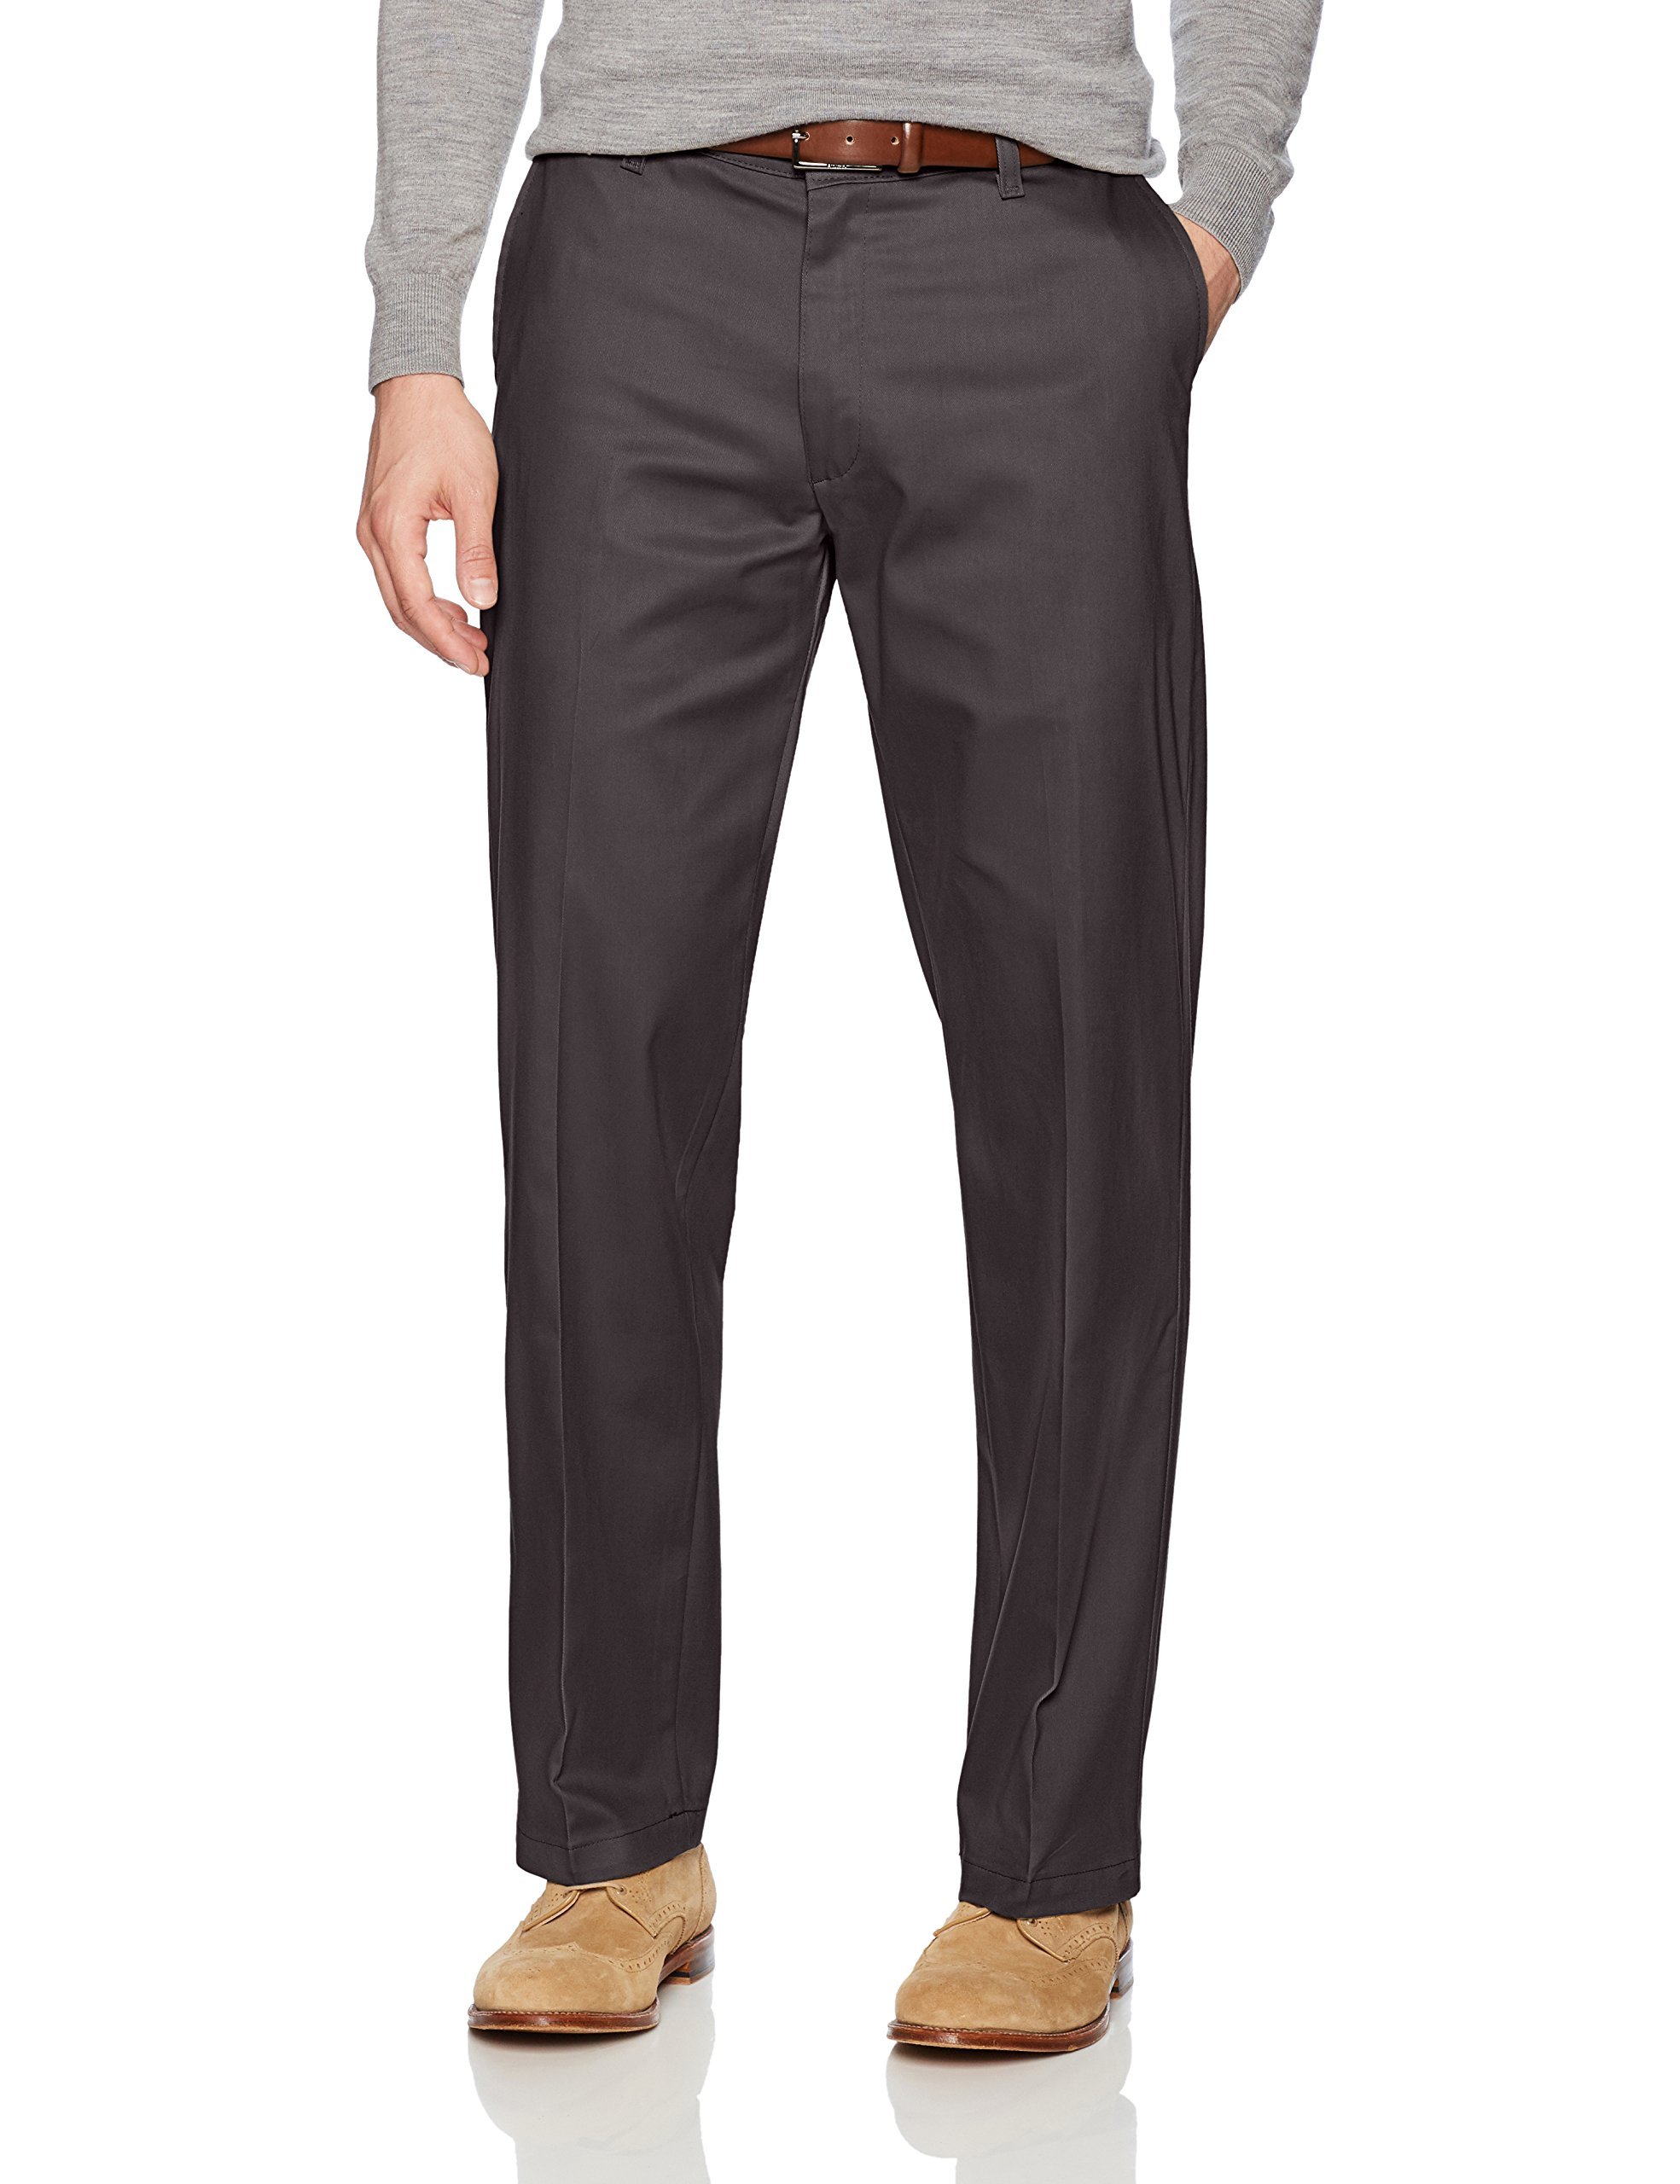 LEE Men's Total Freedom Stretch Relaxed Fit Flat Front Pant, Charcoal, 32W x 30L